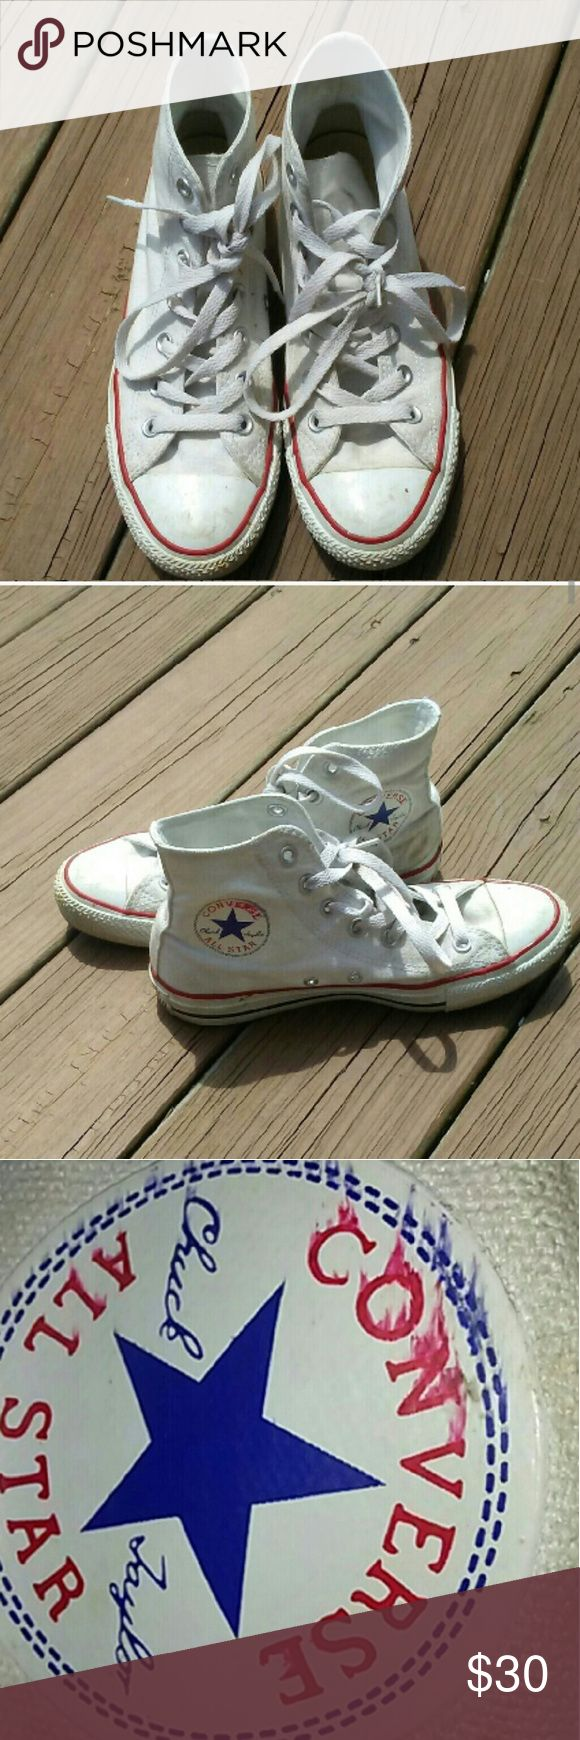 Converse Shoes Hightops Whit